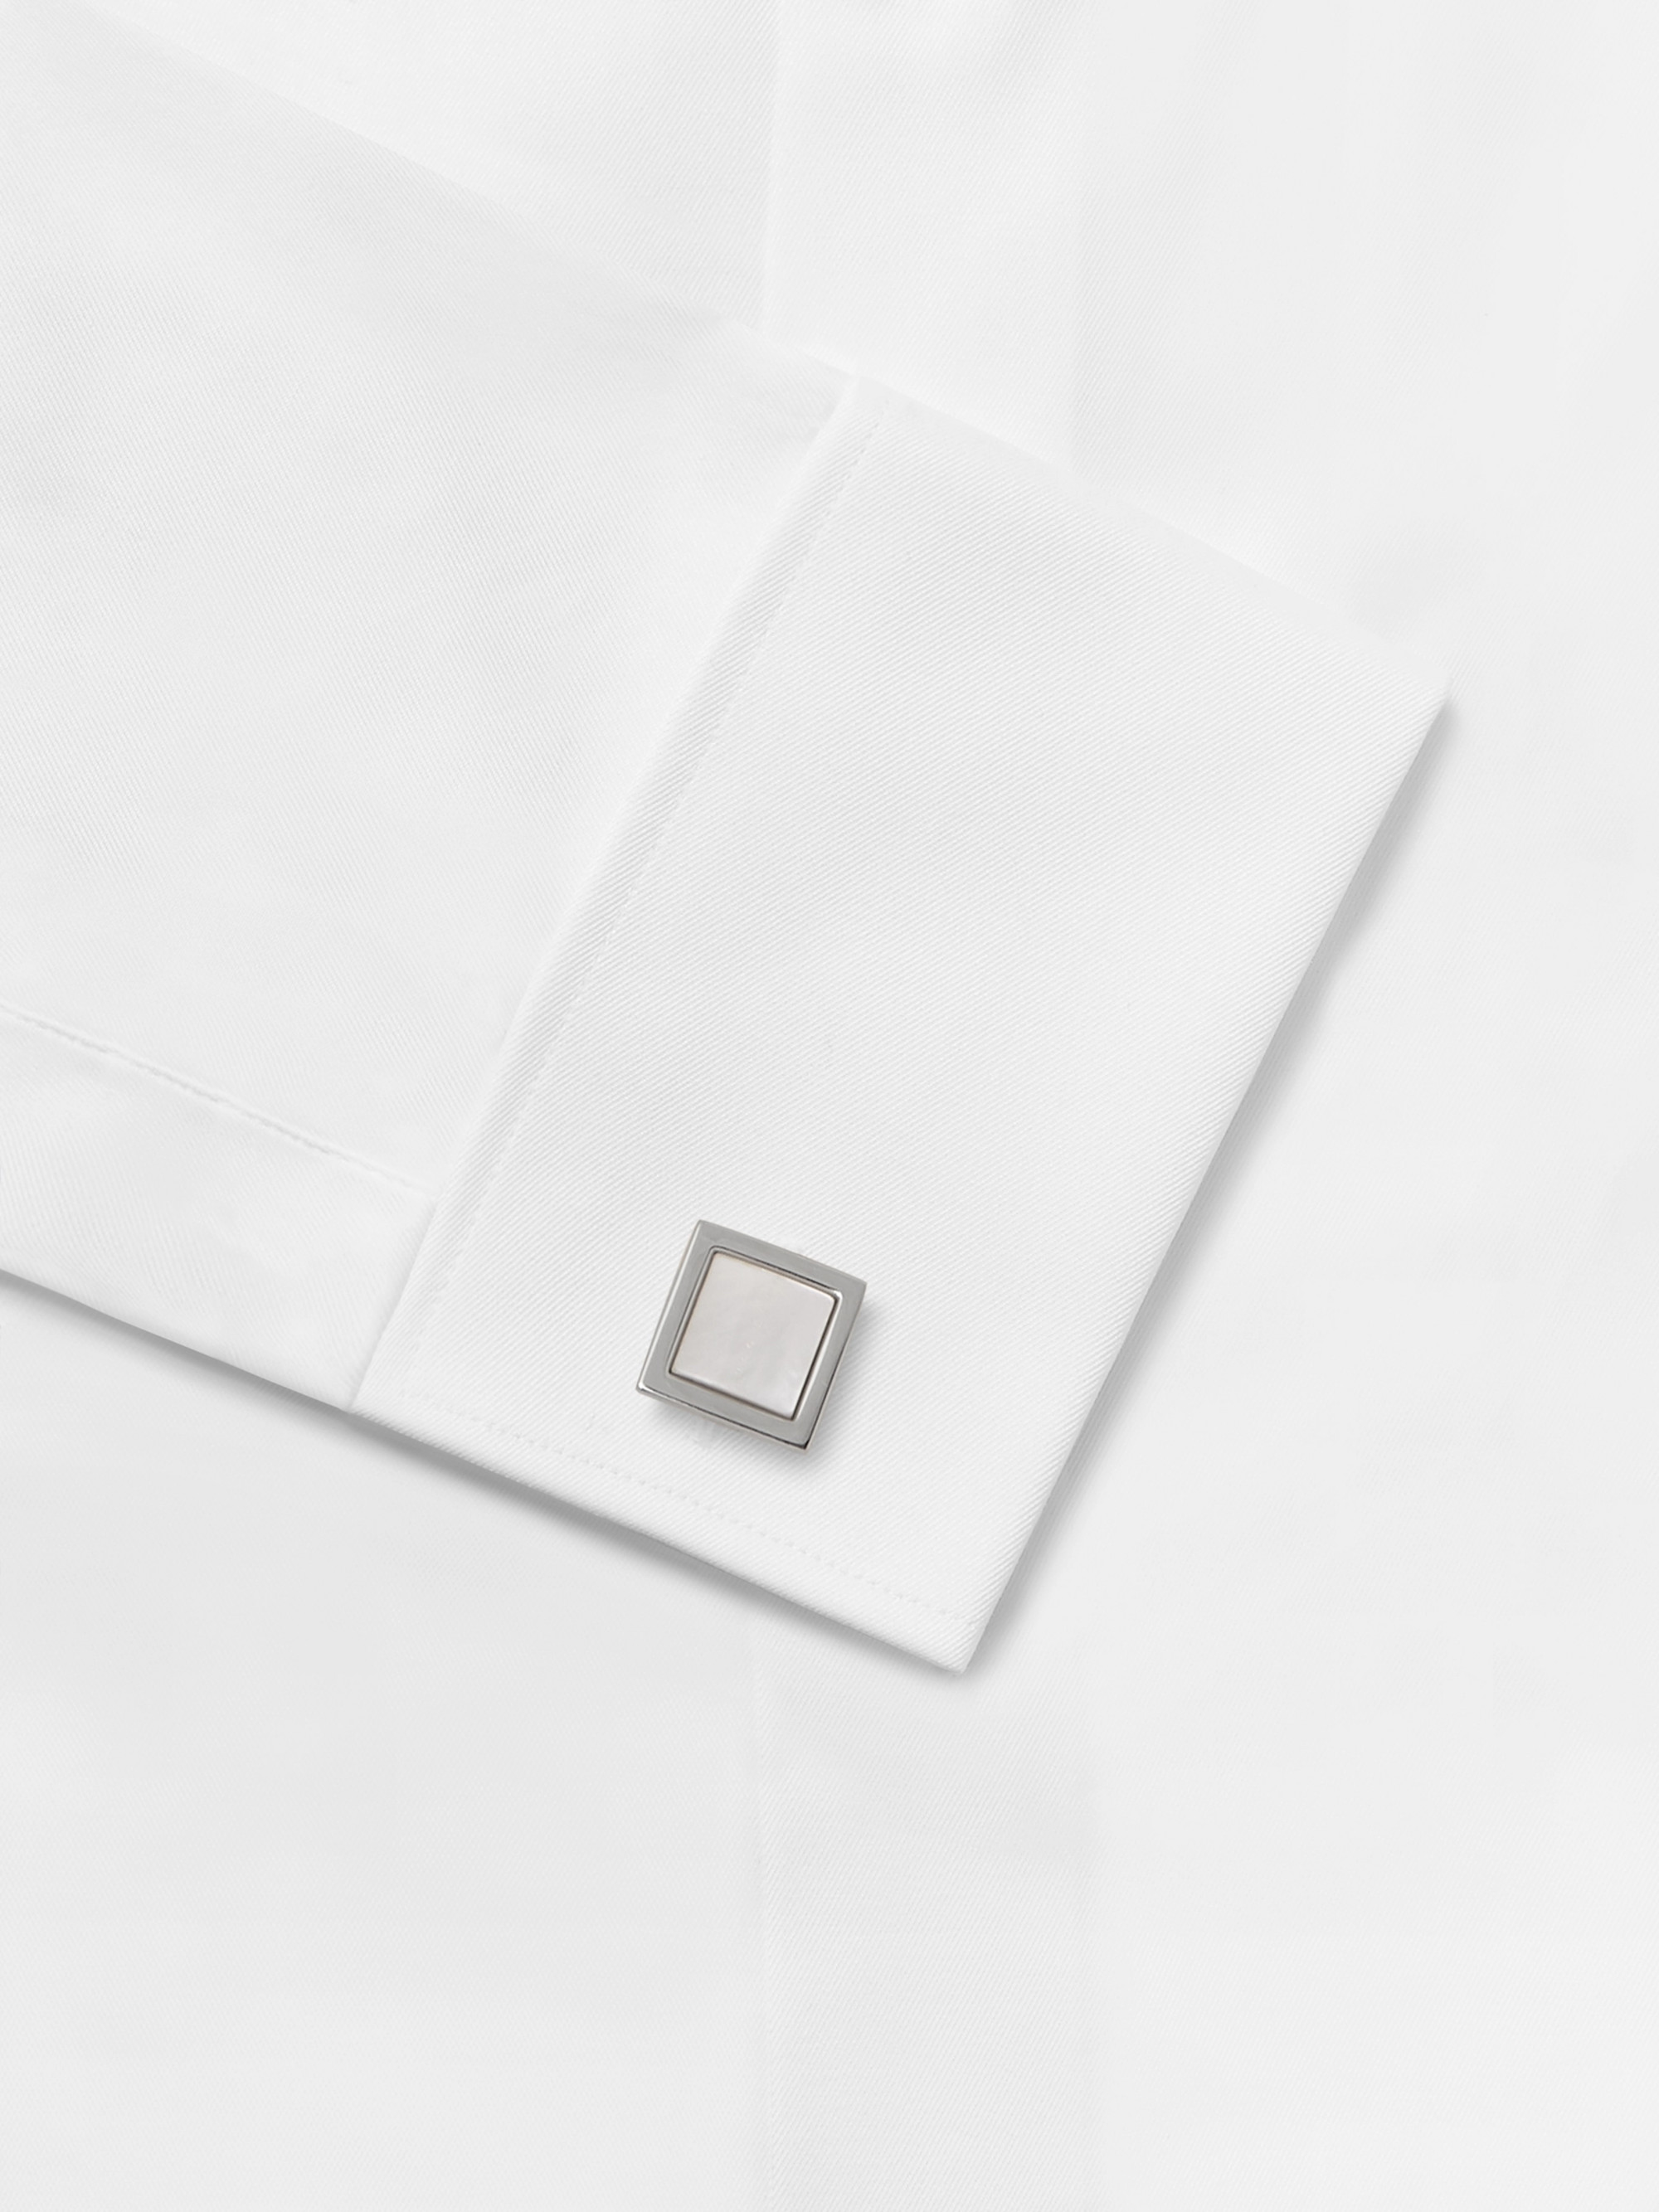 Hugo Boss Silver-Tone Mother-of-Pearl Cufflinks